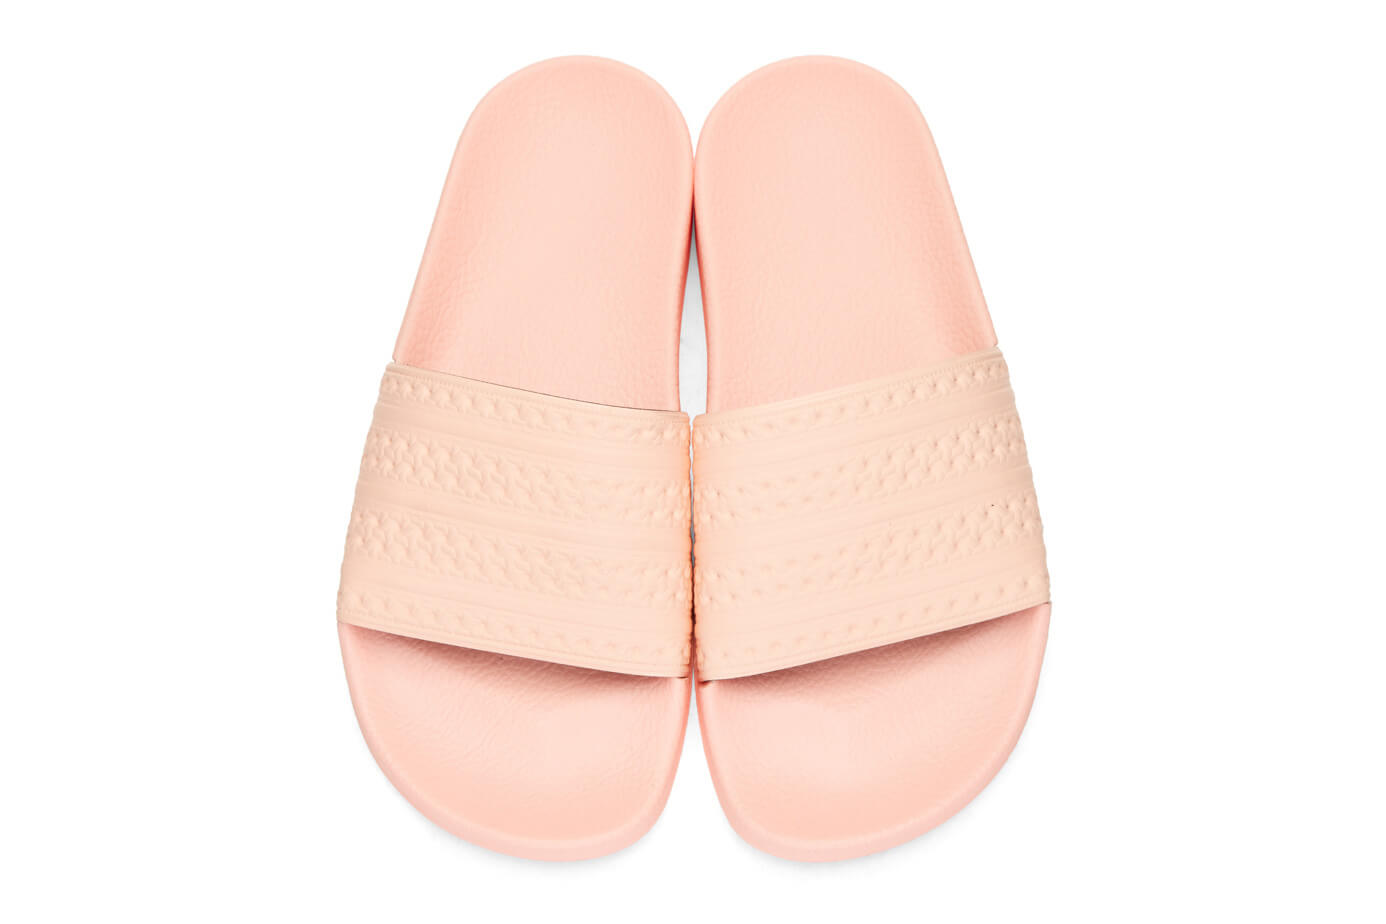 5109b83c3436 Pastel Adilette Slides by adidas Originals - Design i need